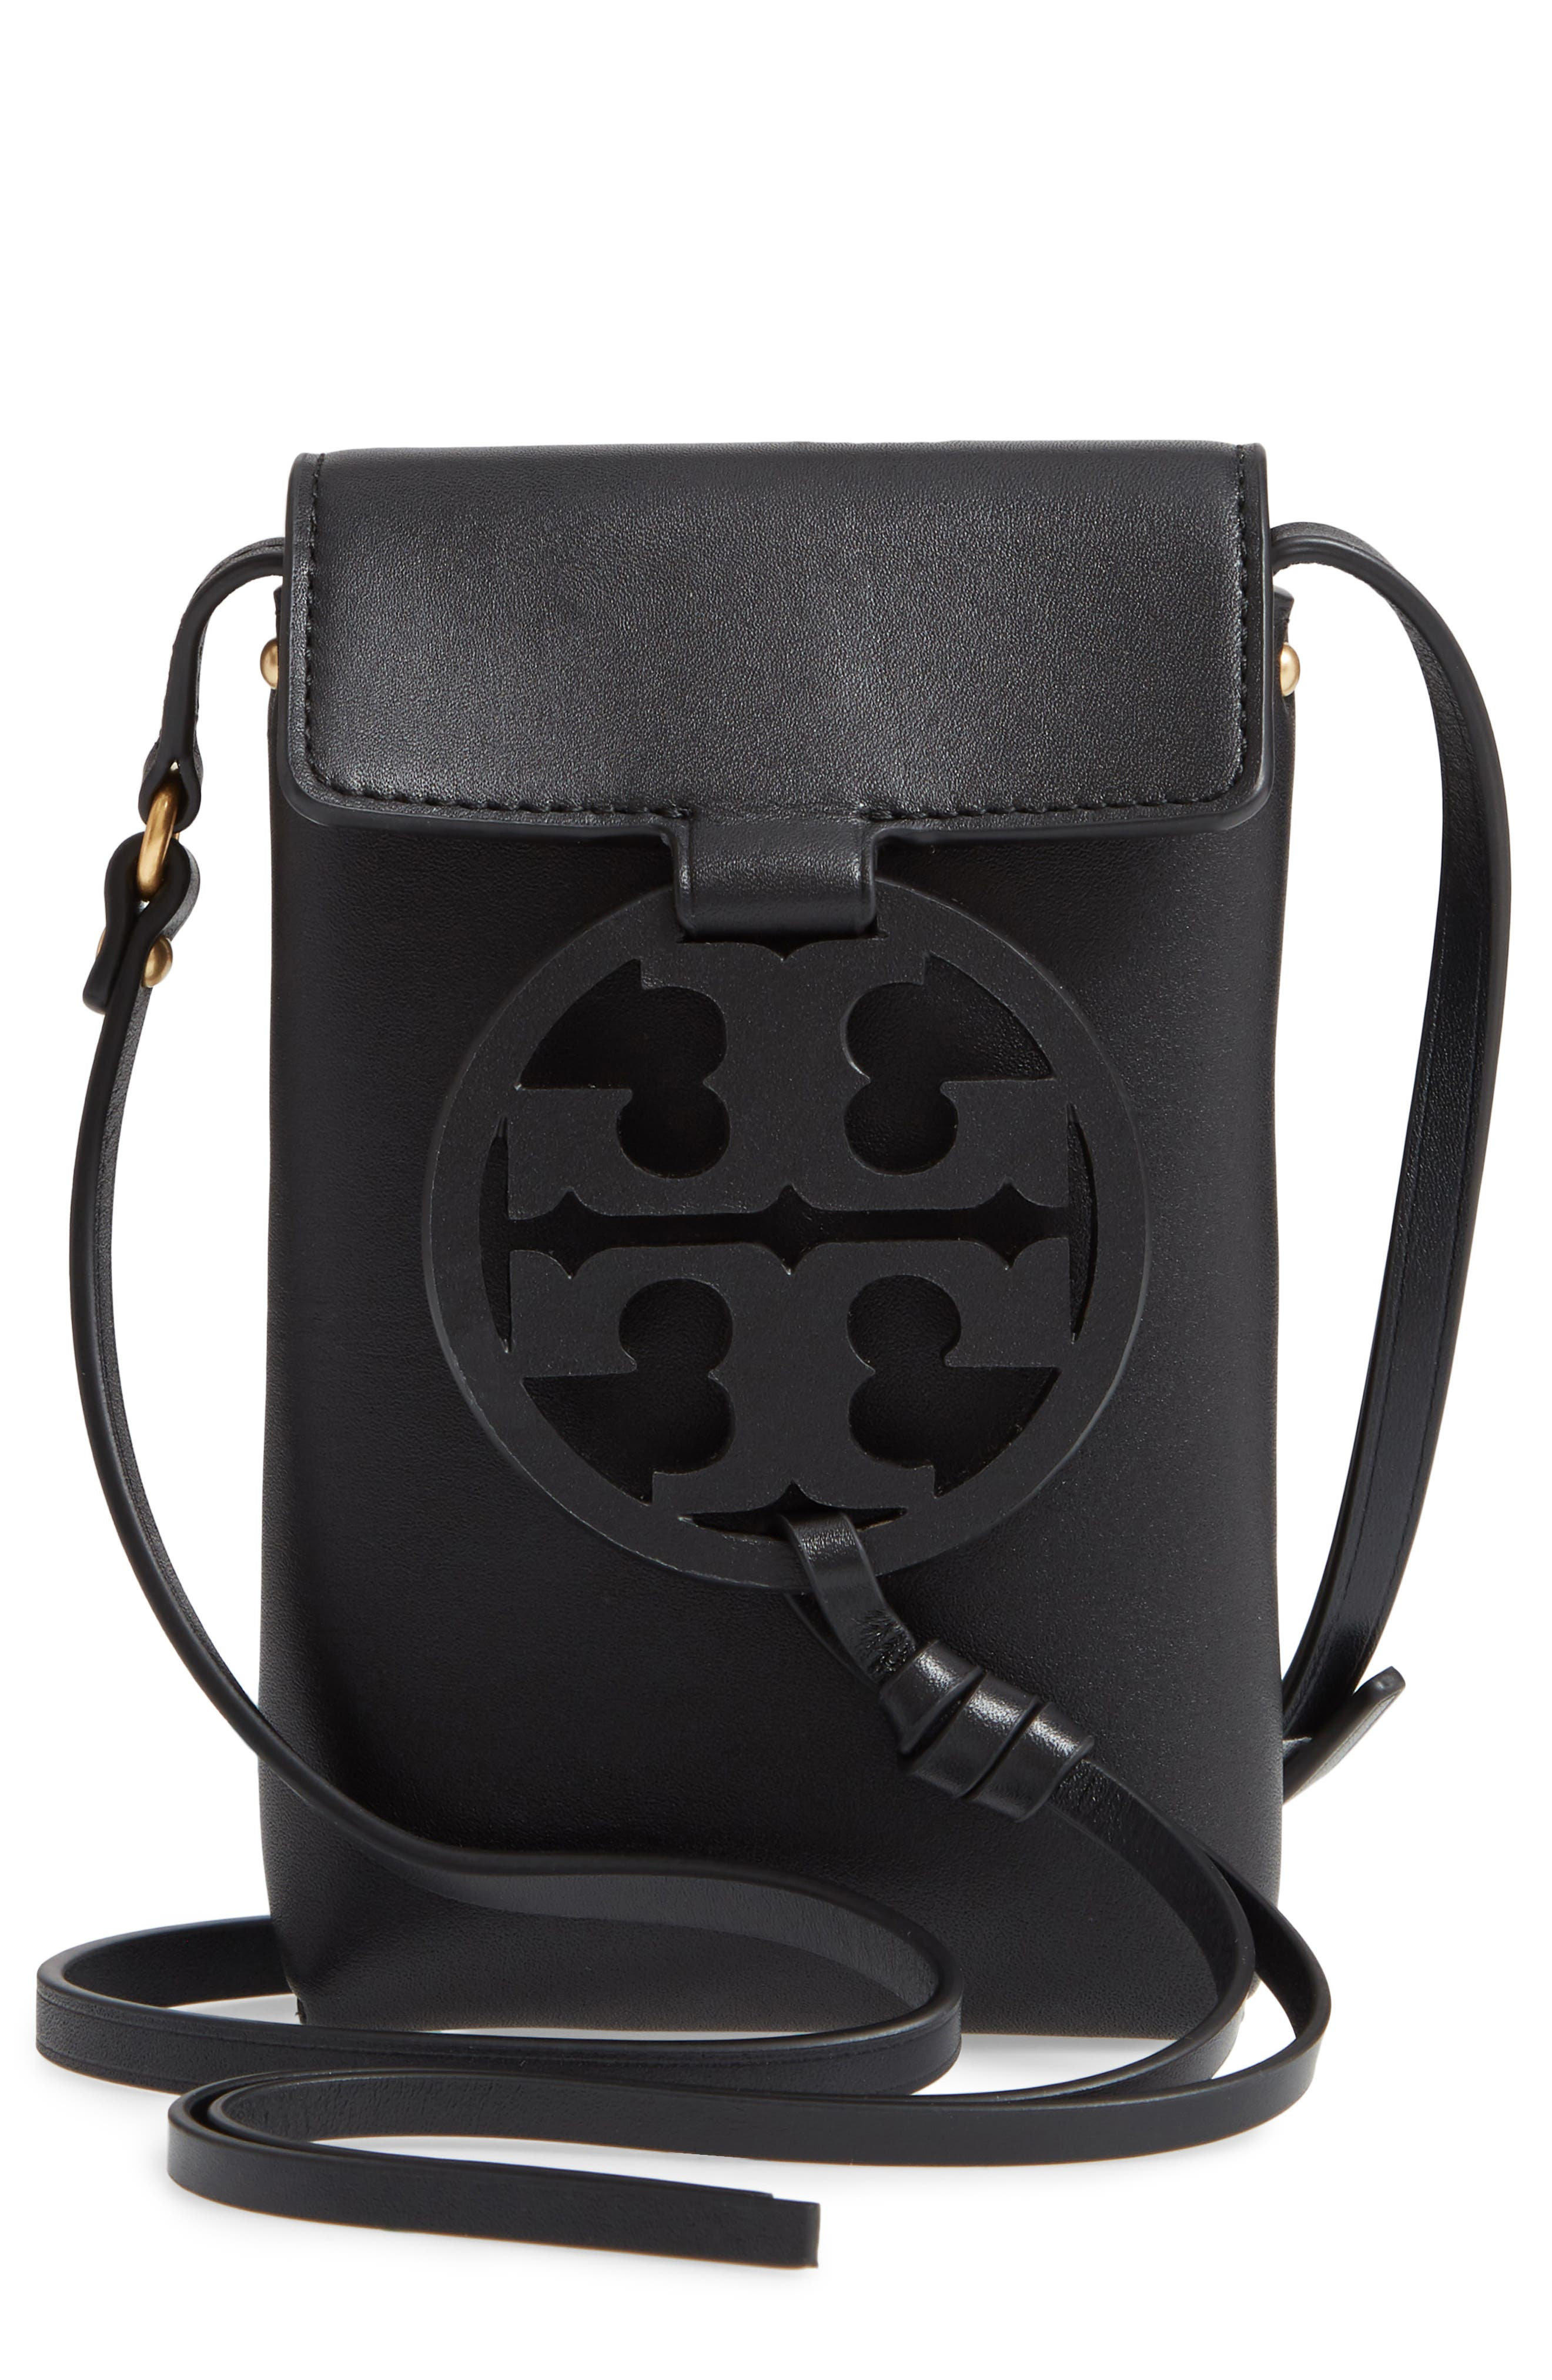 TORY BURCH, Miller Leather Phone Crossbody Bag, Main thumbnail 1, color, BLACK